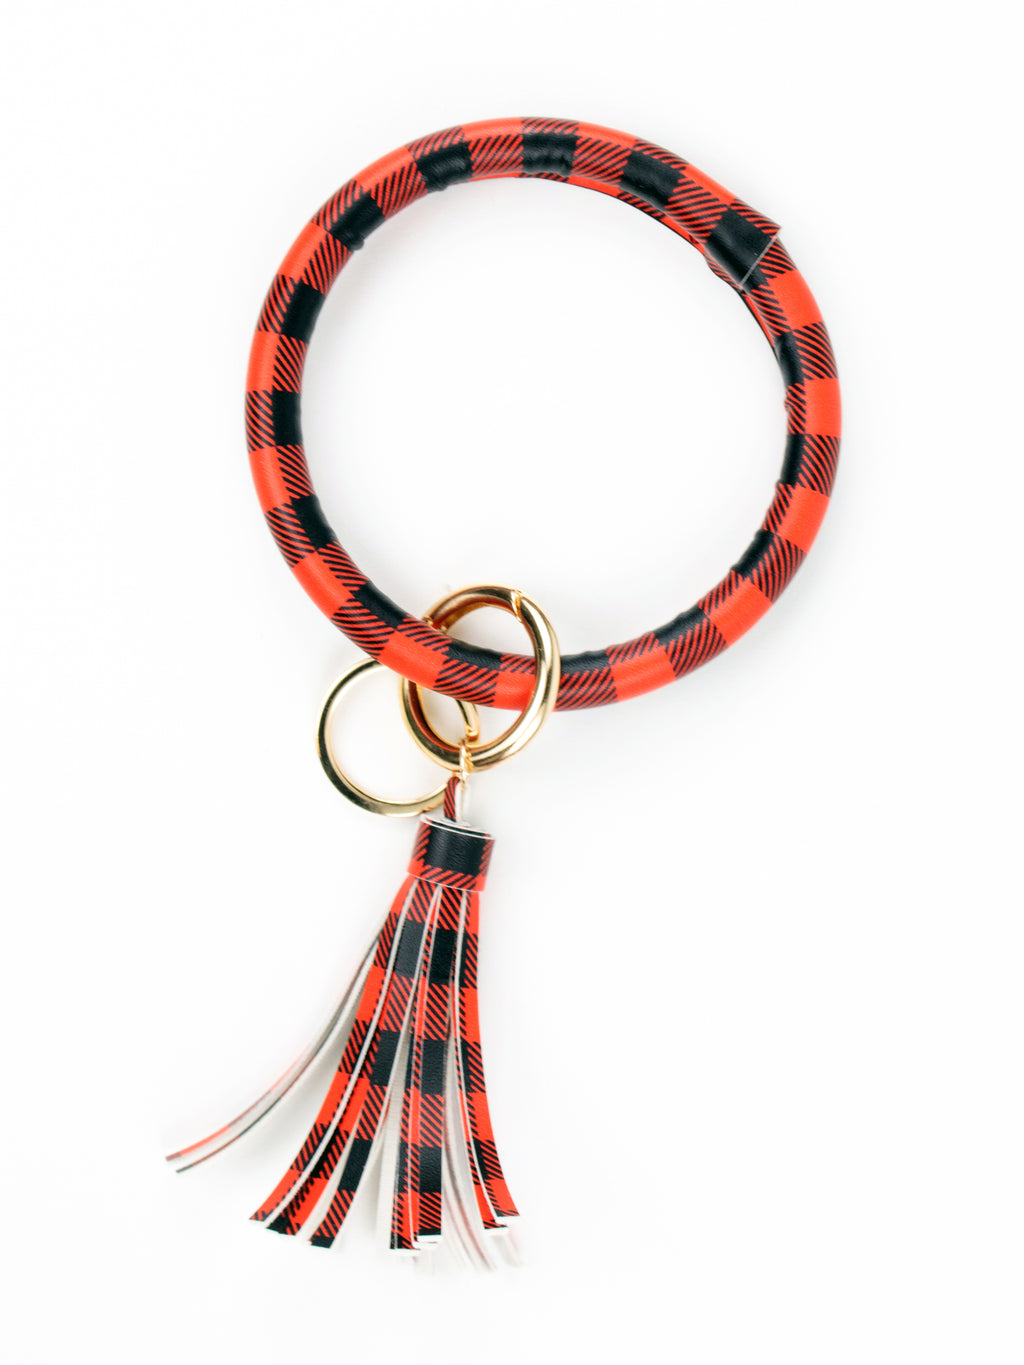 Bangle Bracelet Key Ring - Red Buffalo Plaid